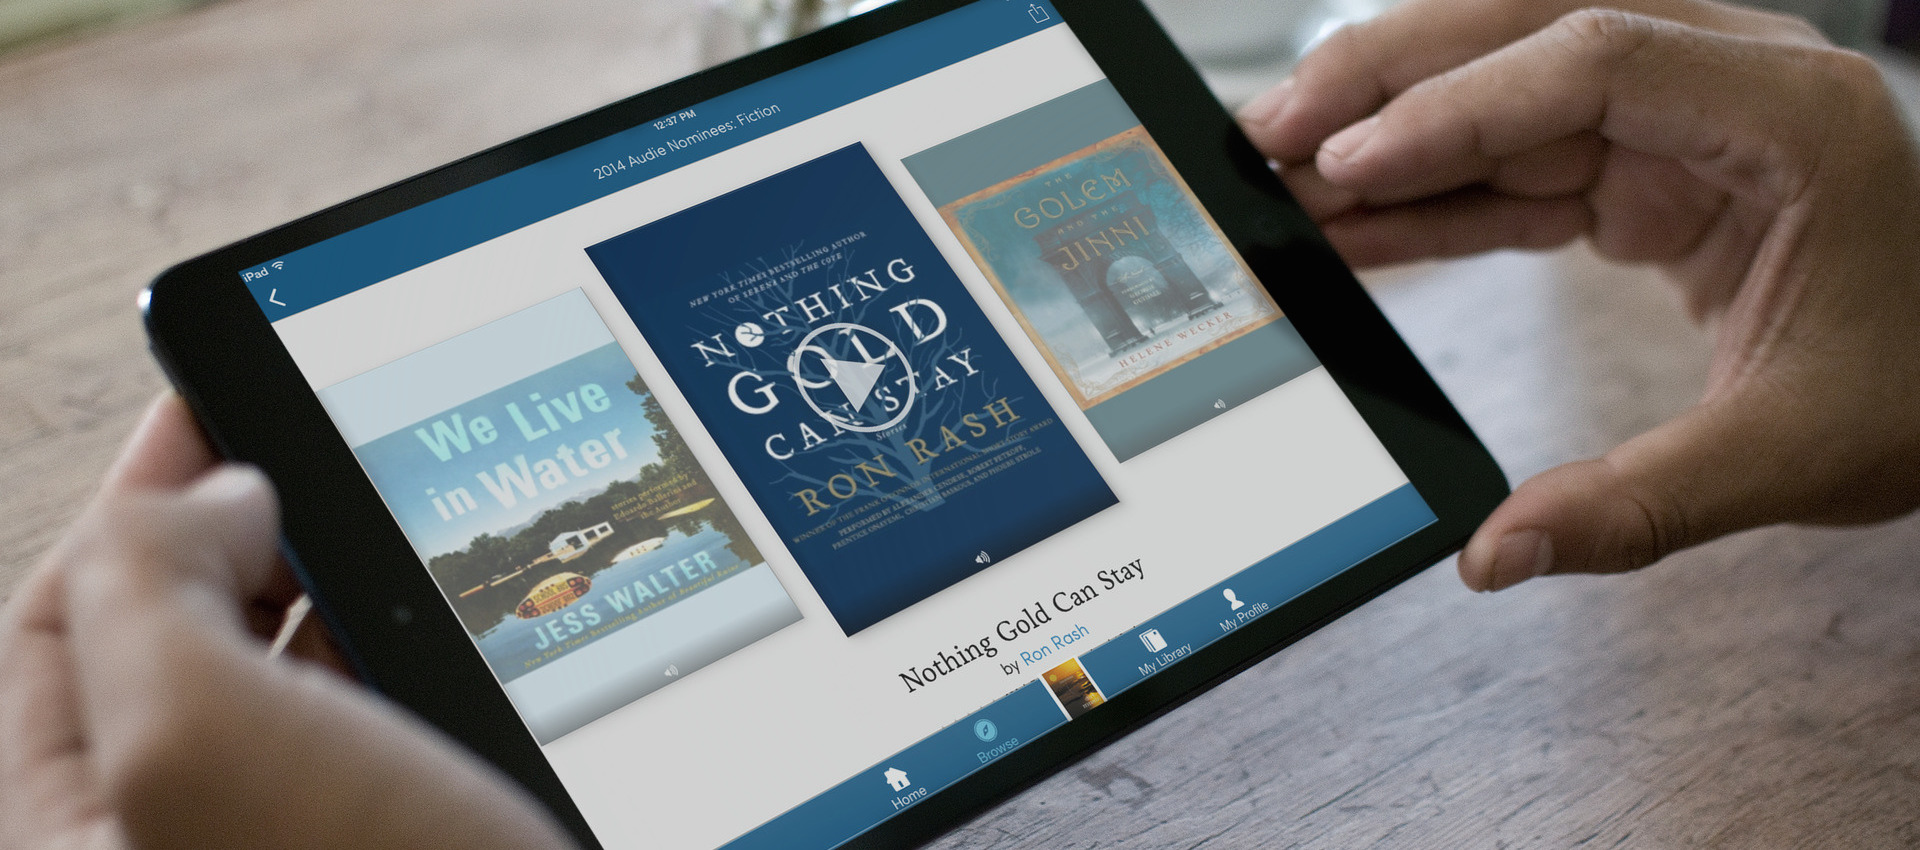 Scribd Adds Unlimited Audiobooks to Its Ebook Service